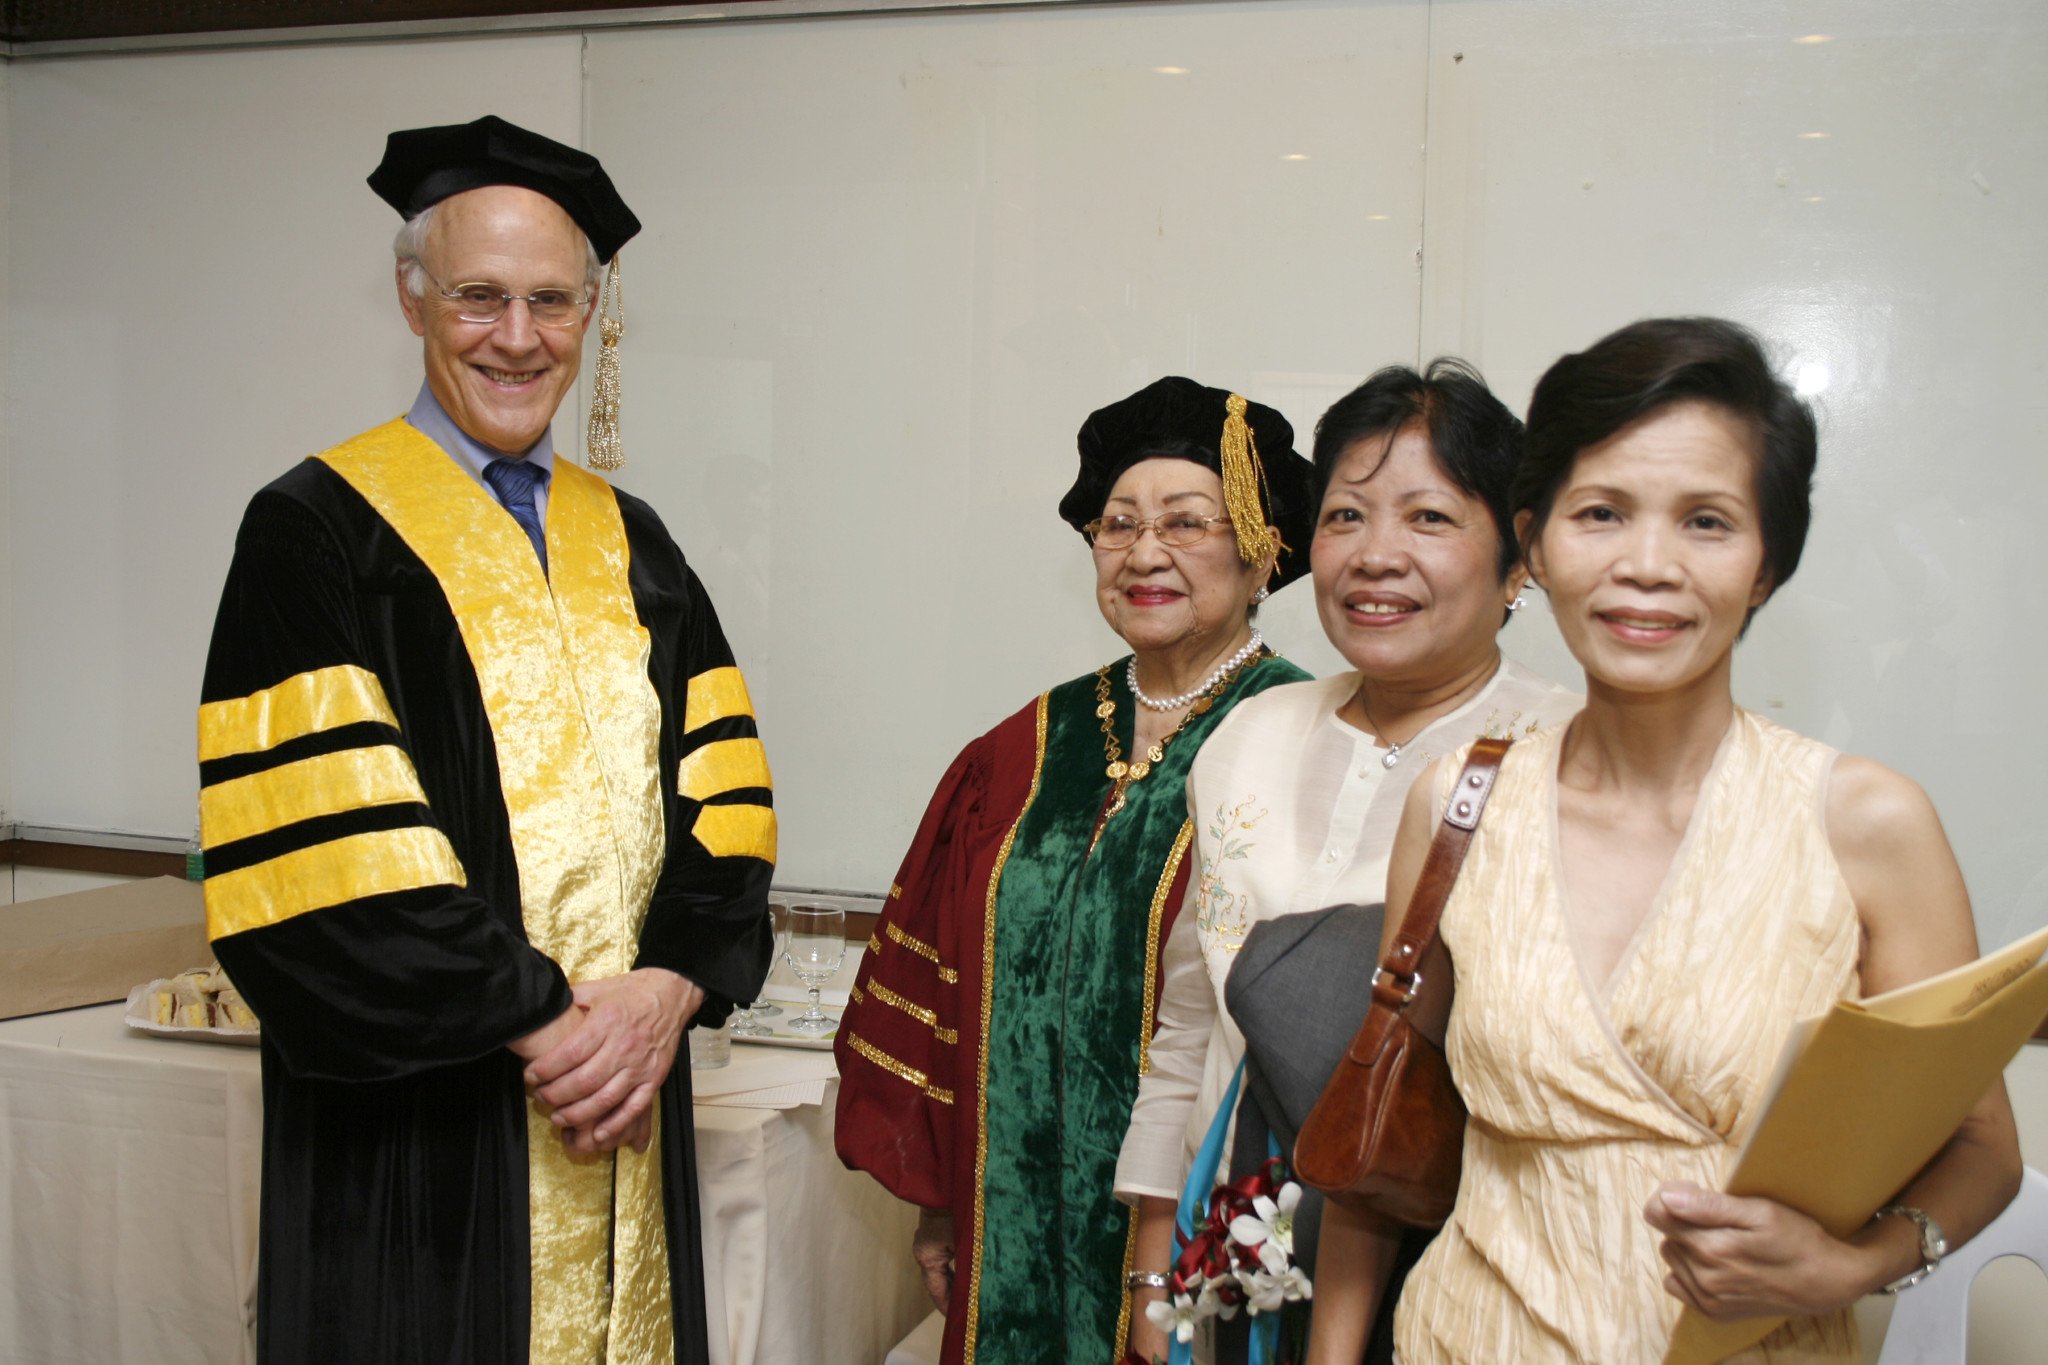 Physics Nobel Laureate Prof. David J. Gross being awarded an Honorary Doctorate Degree in Manila